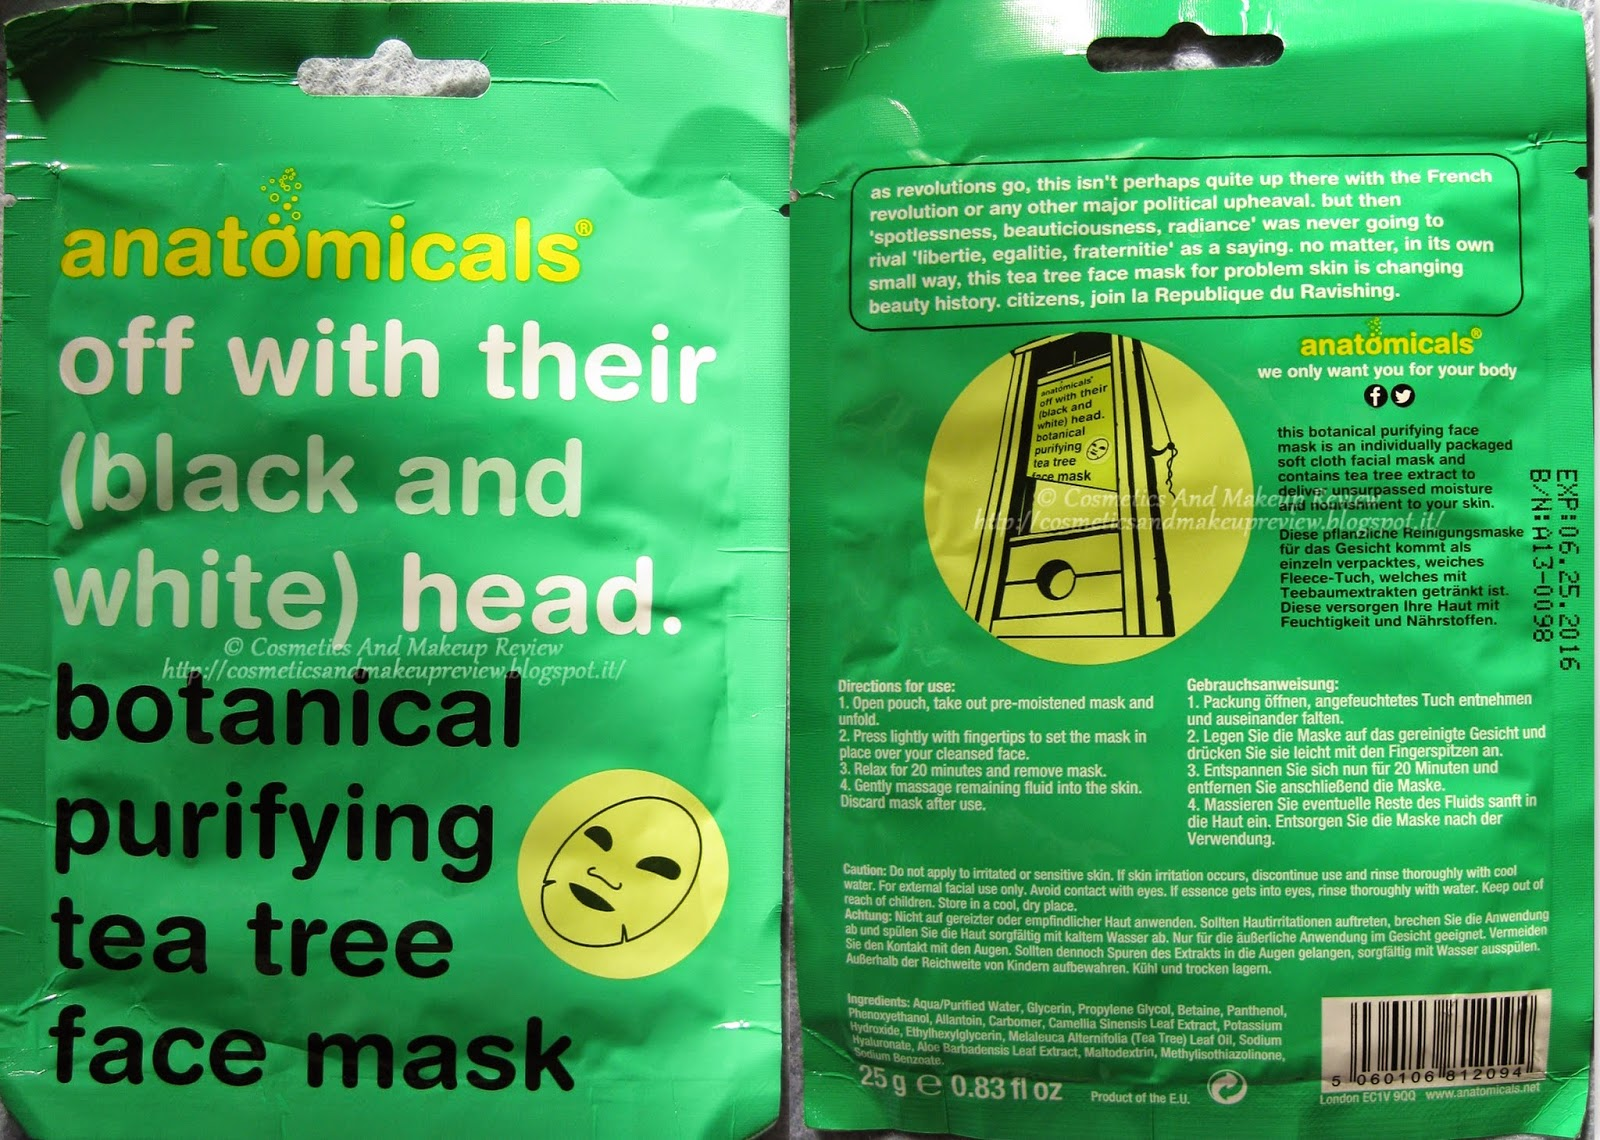 Anatomicals - Off with their (black and white) head - Botanical purifying tea tree face mask - packaging